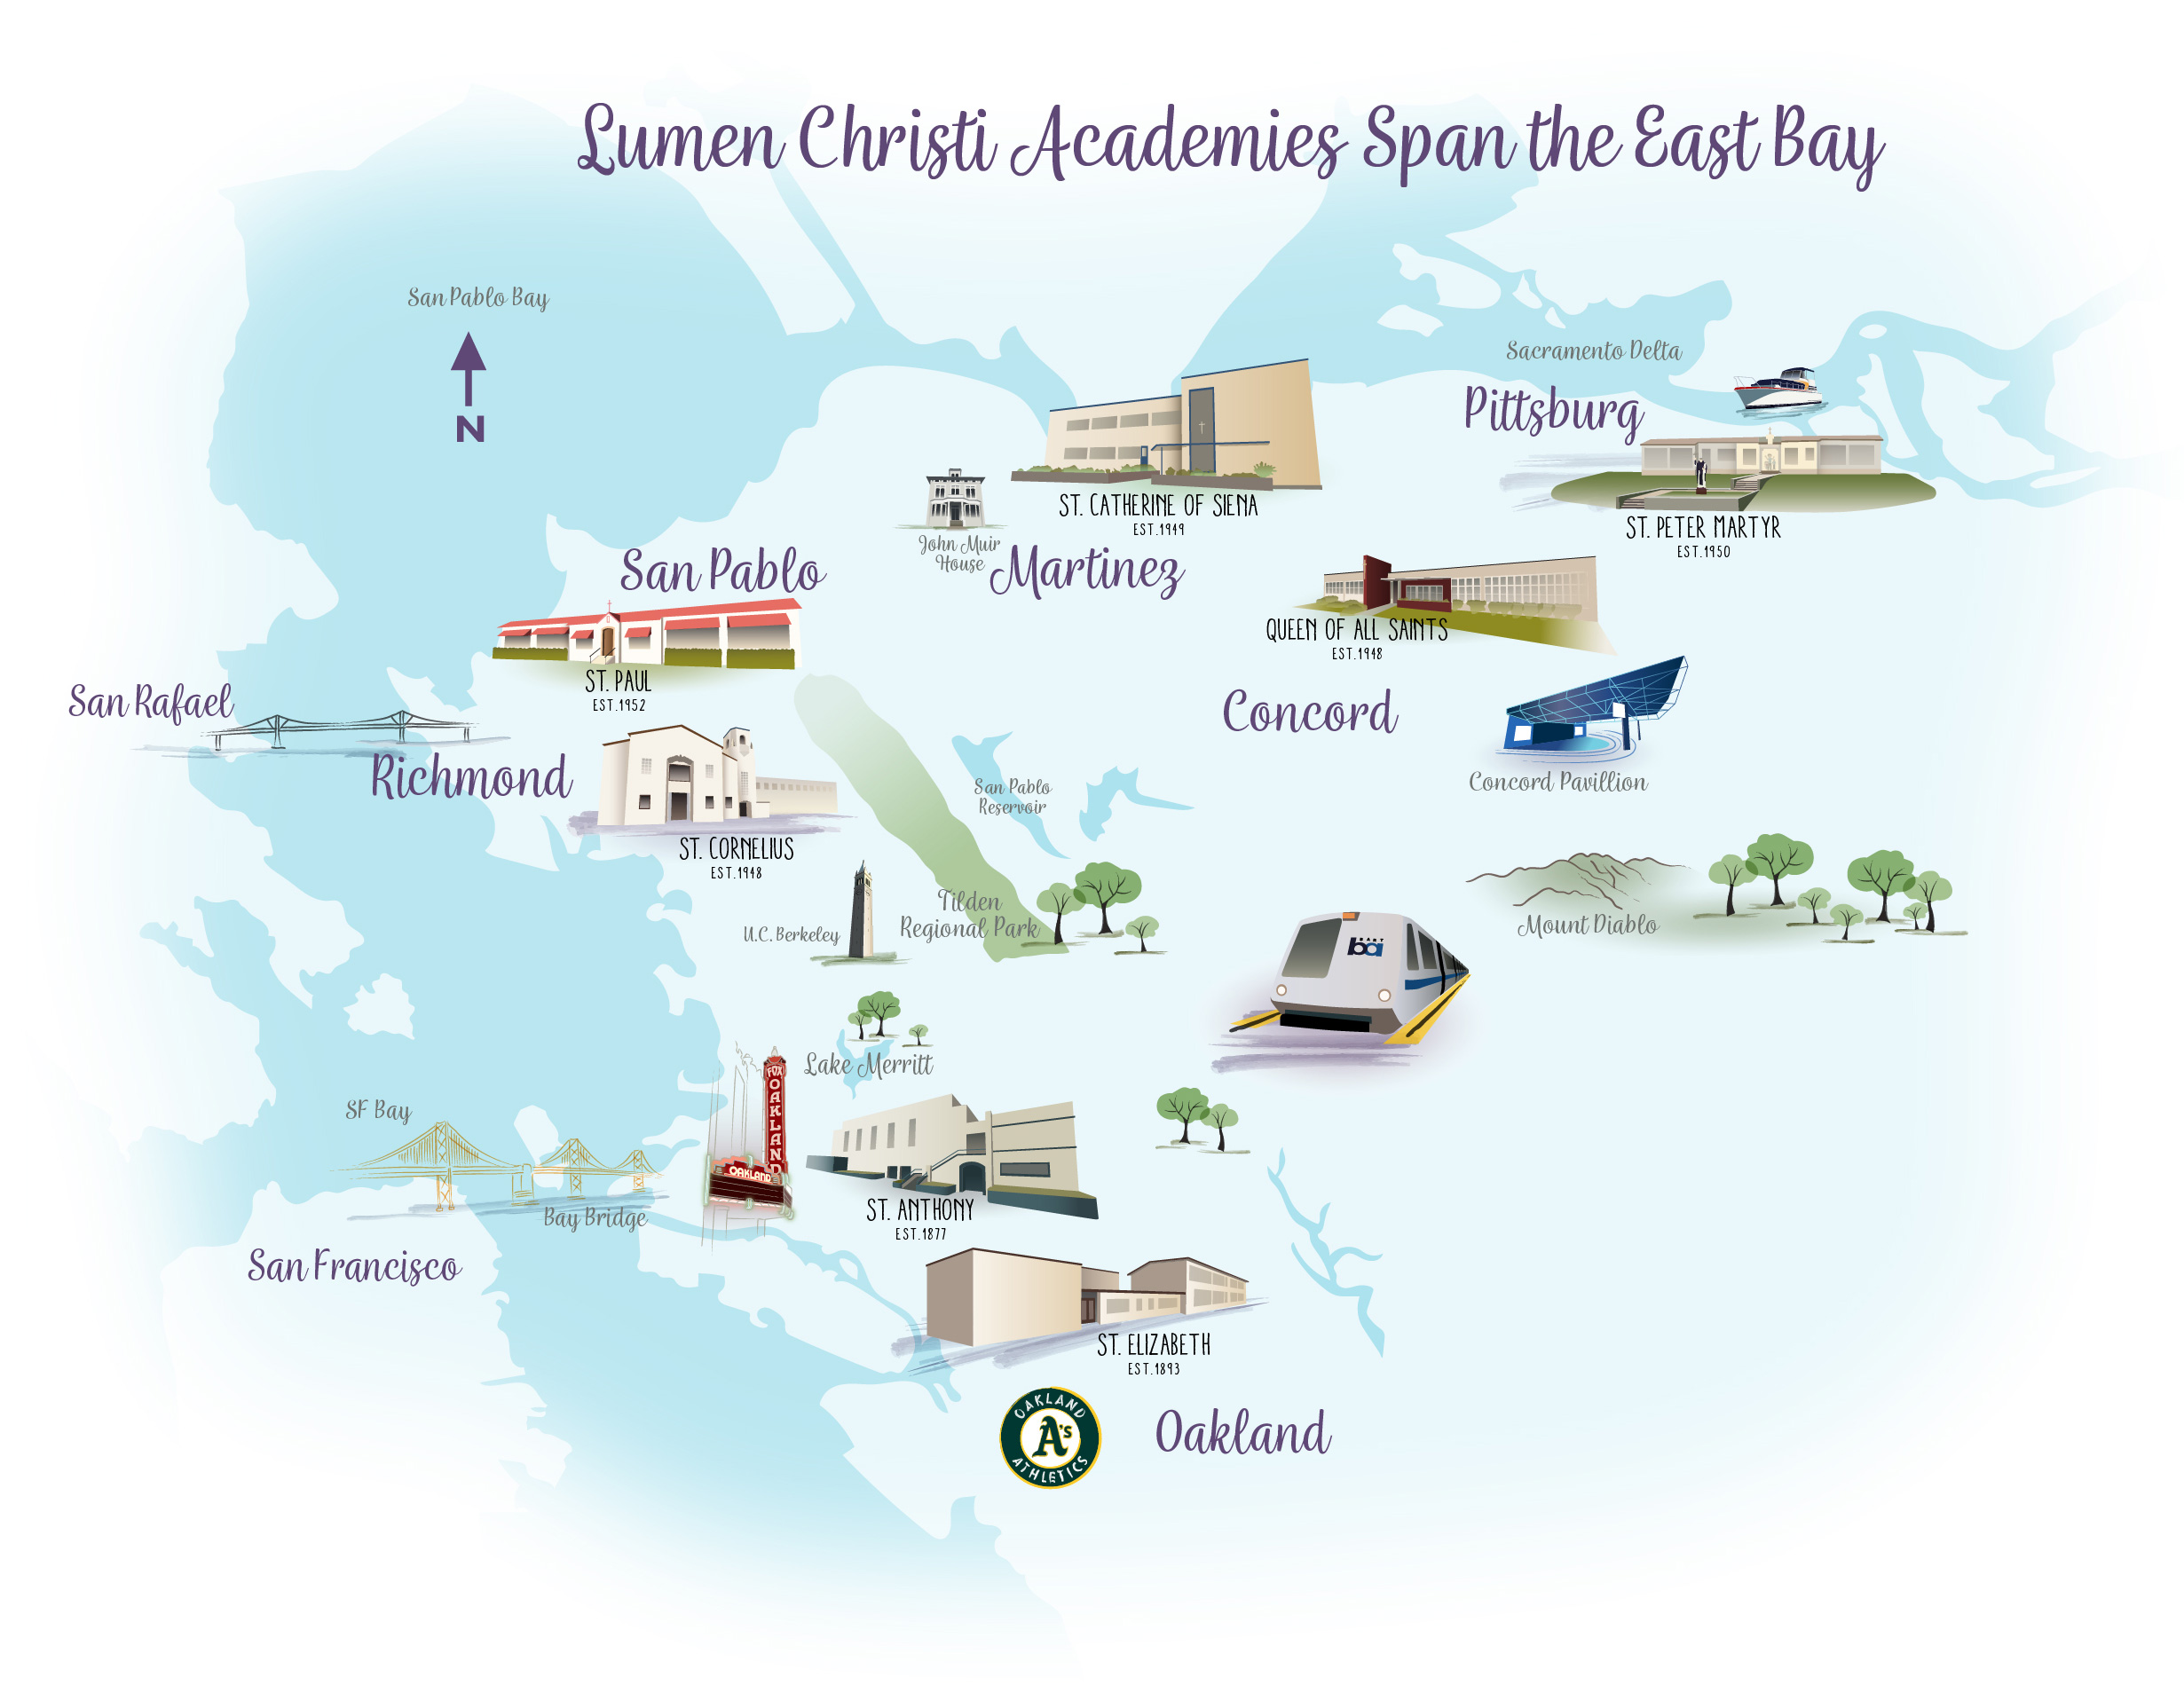 Lumen Christi Academies Span the East Bay